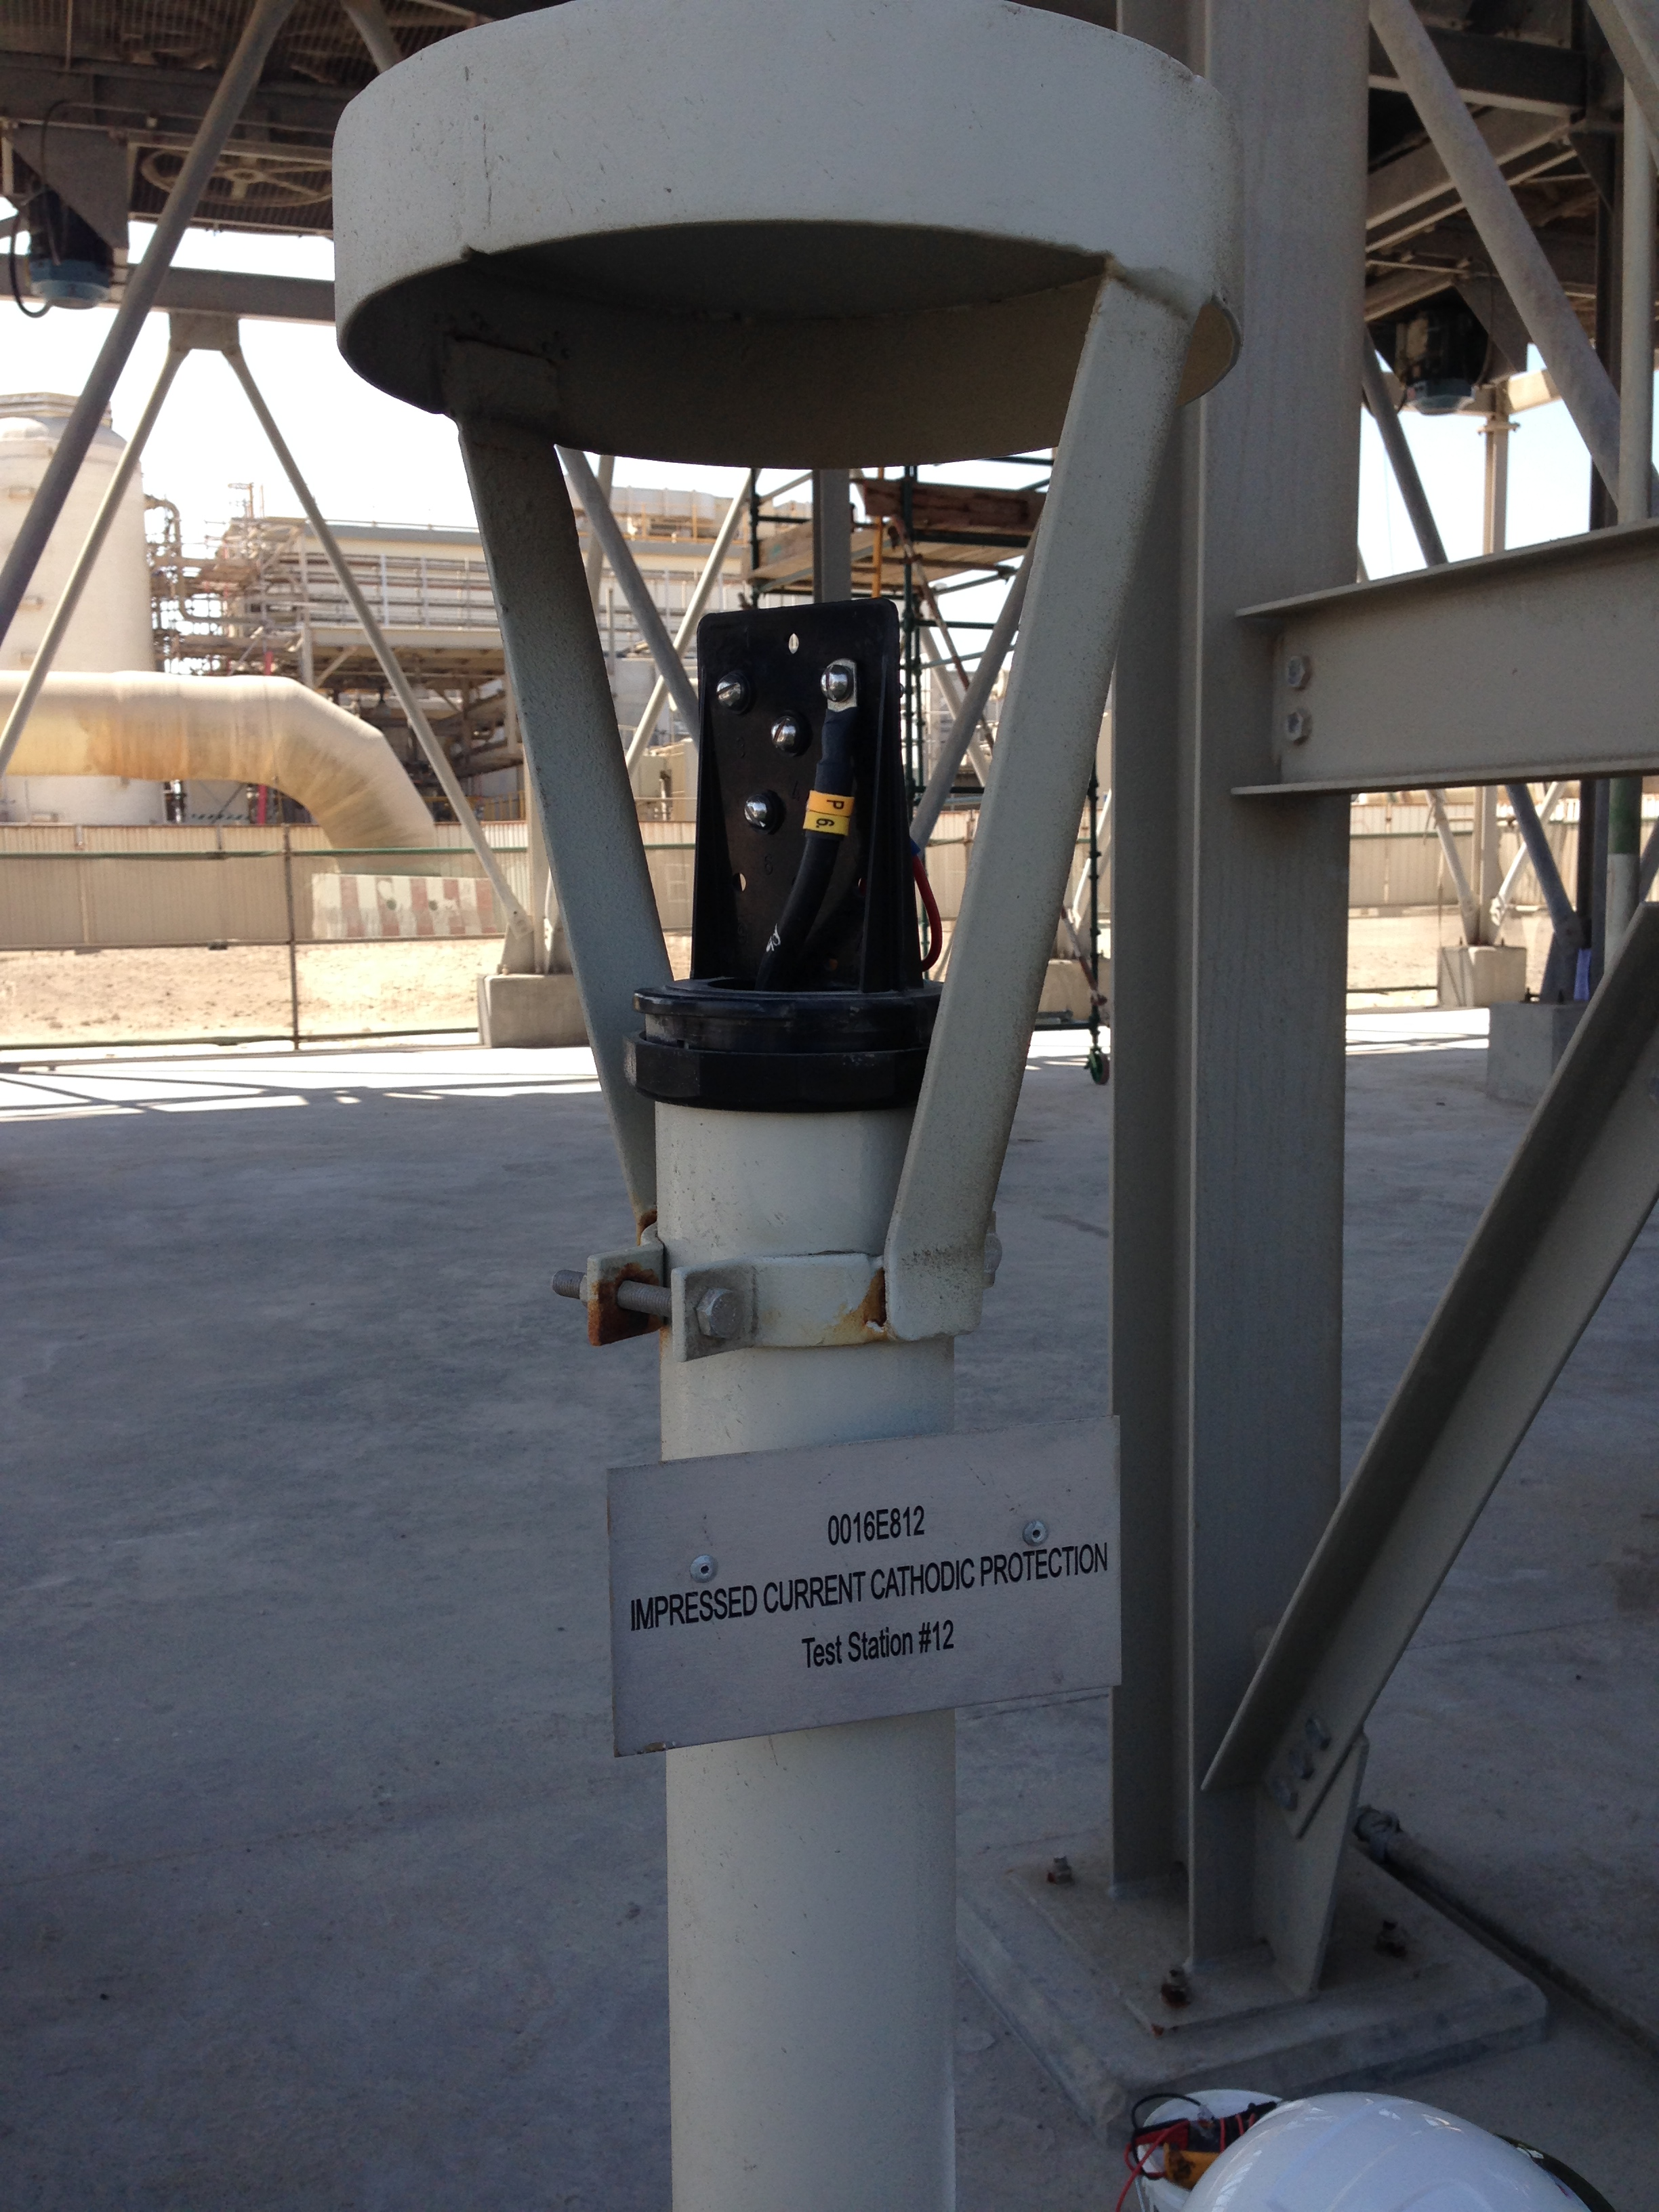 Ducorr installs this cathodic protection test post as part of an impressed current system for plant piping